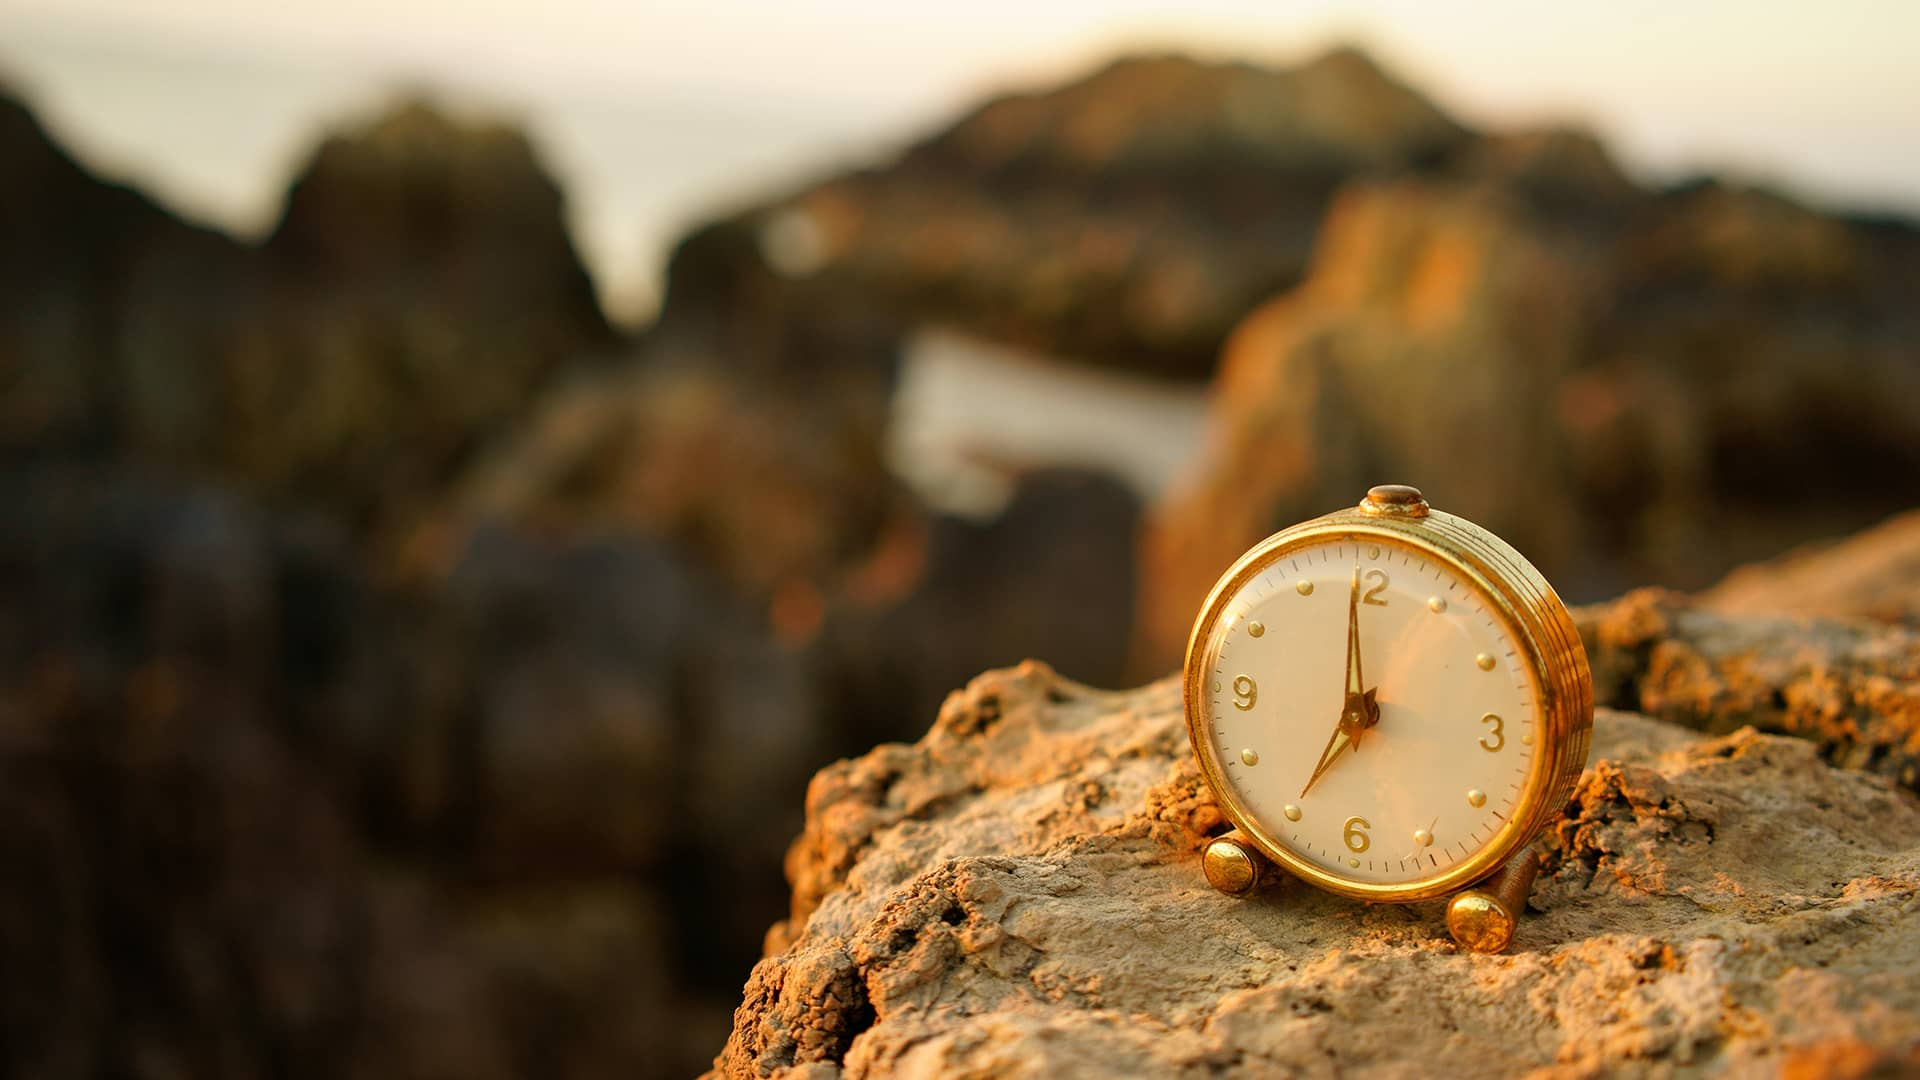 Golden Hour Photography Lighting - When is Magic Hour